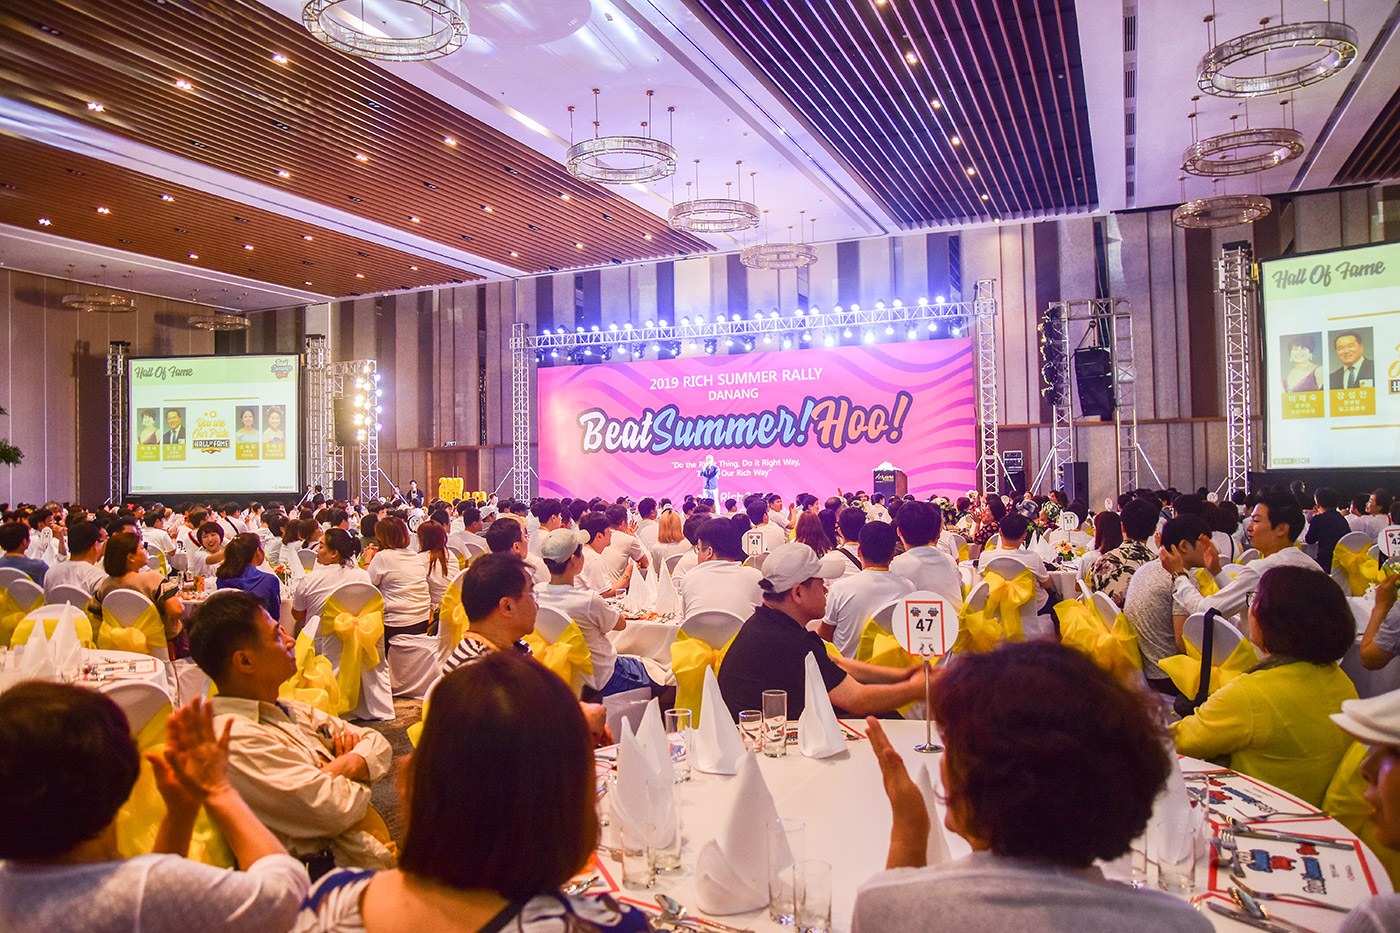 RICH & CO.: RICH SUMMER RALLY IN DANANG